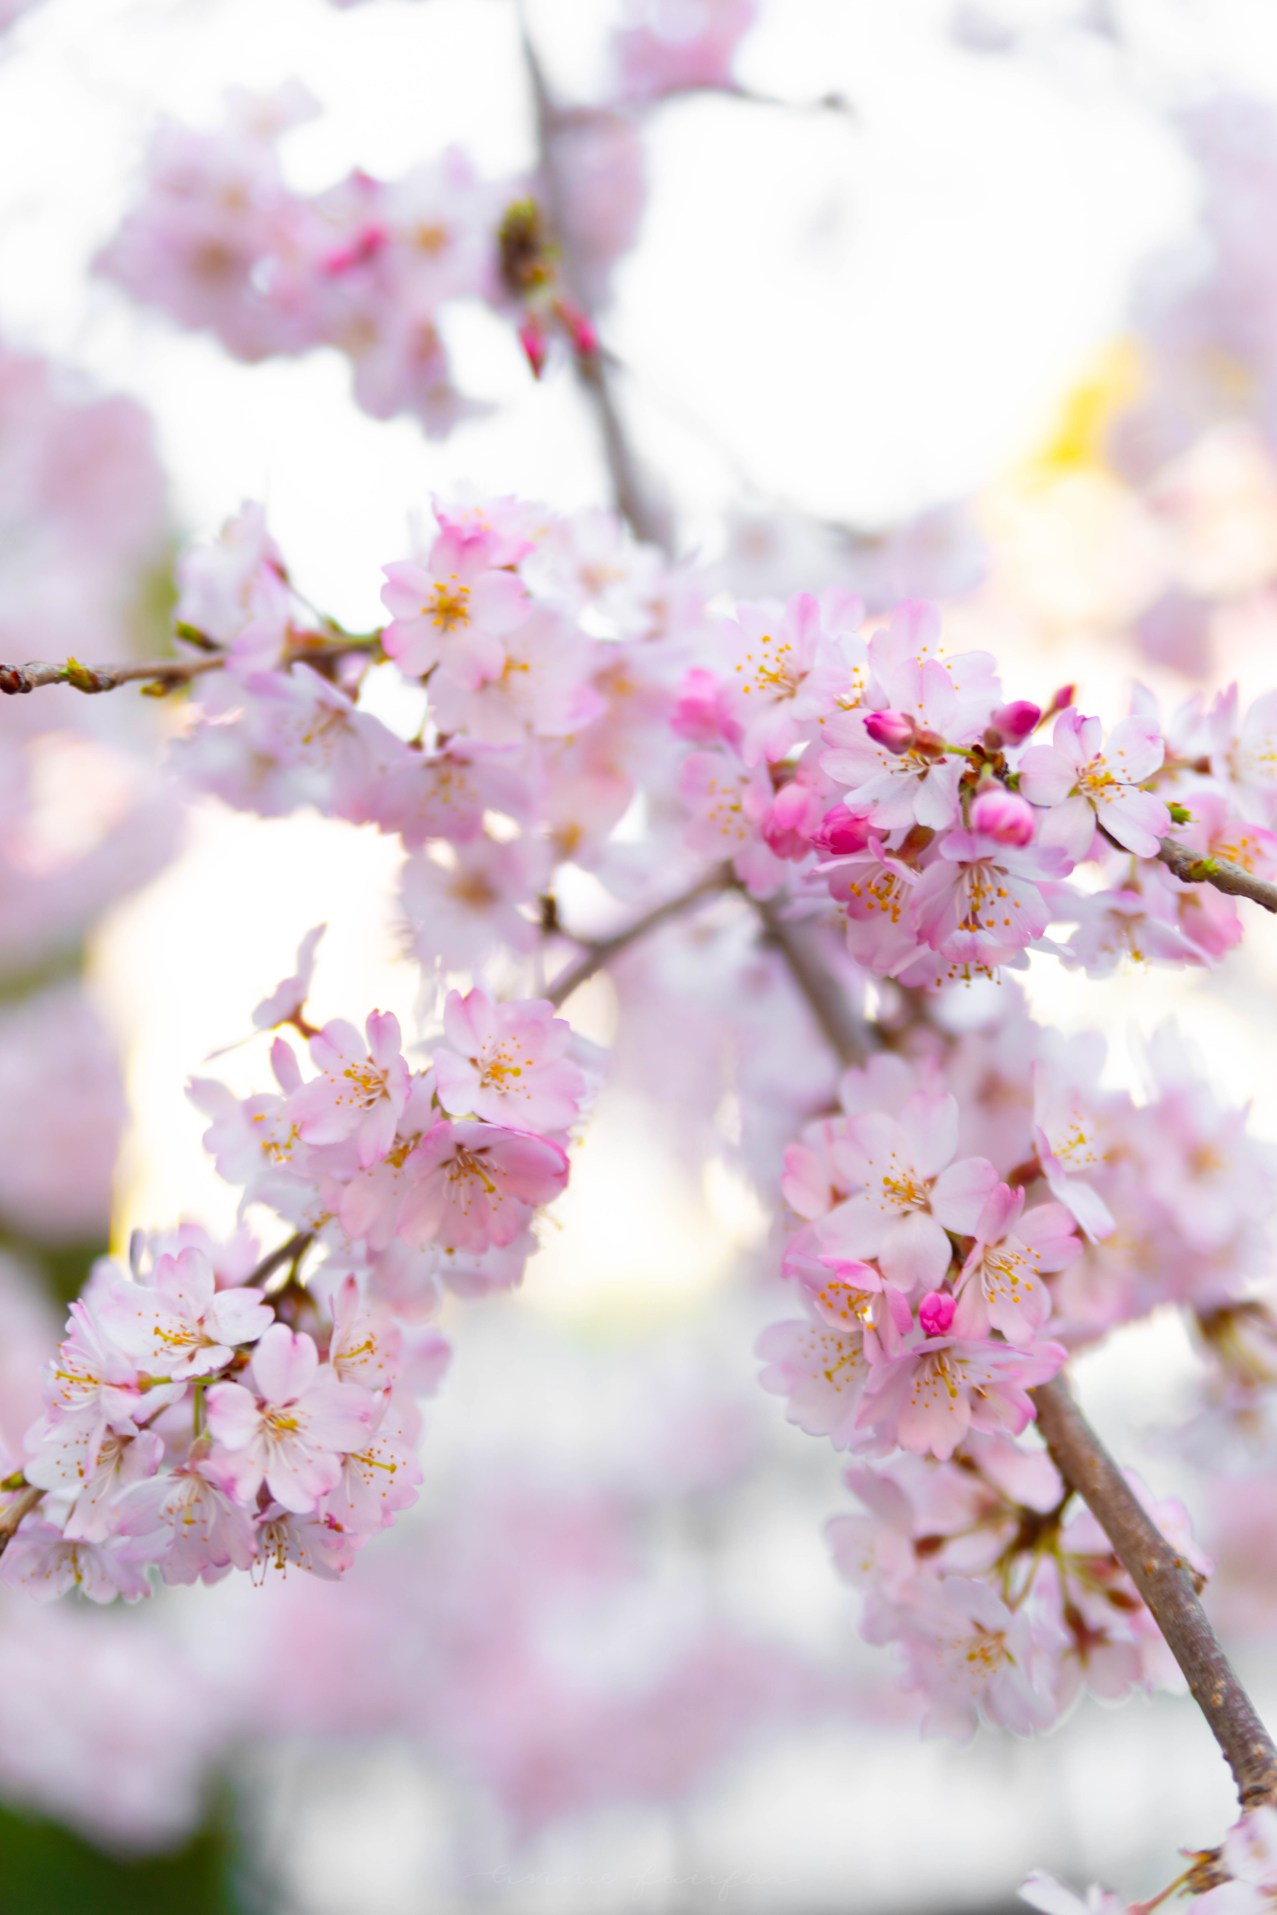 Cherry Blossom Viewing Spots Around Japan Where to see Cherry Blossoms in Japan Cherry Blossom Forecast